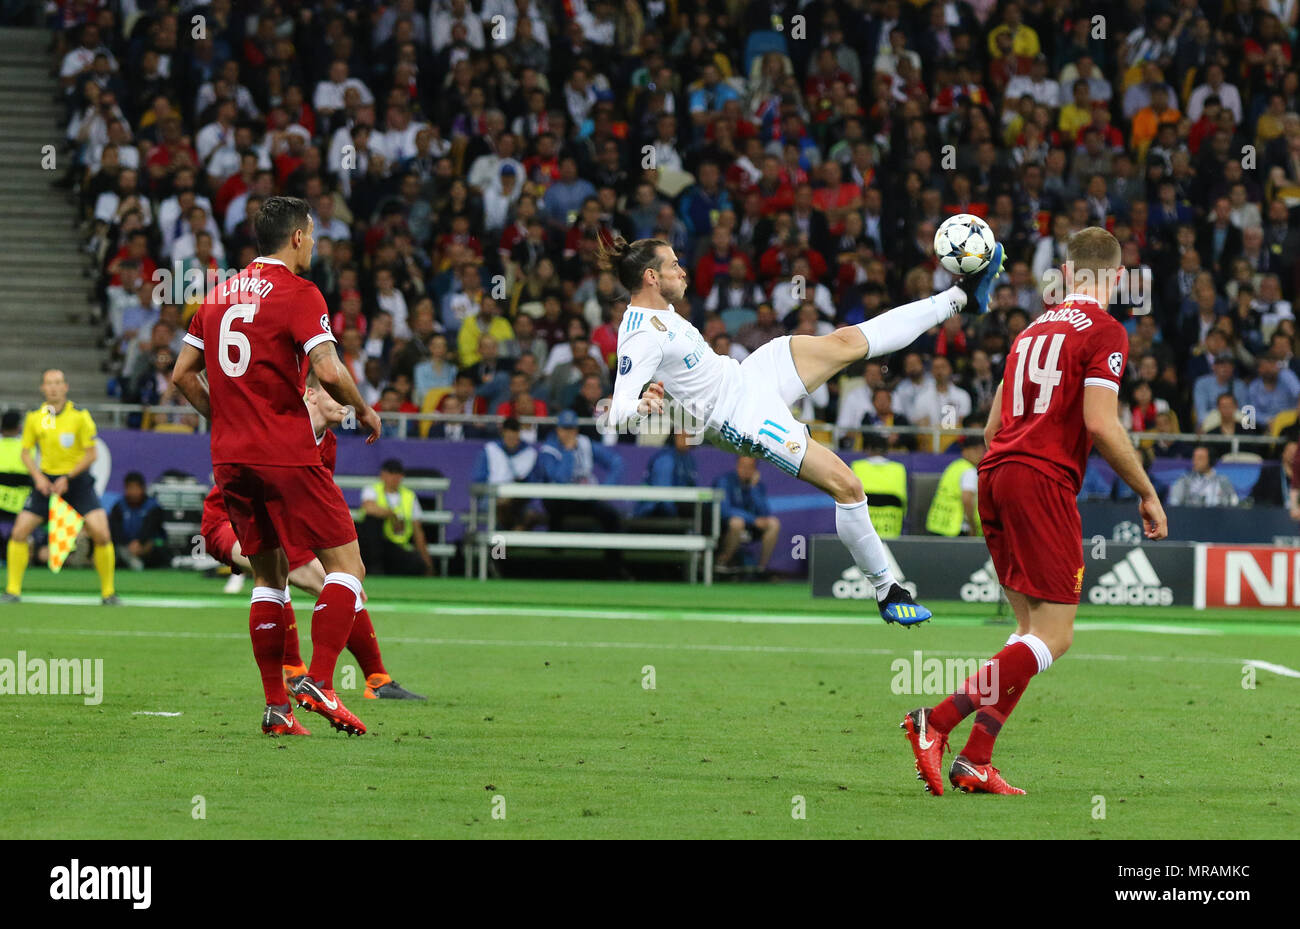 Kiev, Ukraine. 26th May, 2018. Gareth Bale of Real Madrid scores a 2nd goal during the UEFA Champions League Final 2018 game against Liverpool at NSC Olimpiyskiy Stadium in Kyiv, Ukraine. Credit: Oleksandr Prykhodko/Alamy Live News Stock Photo